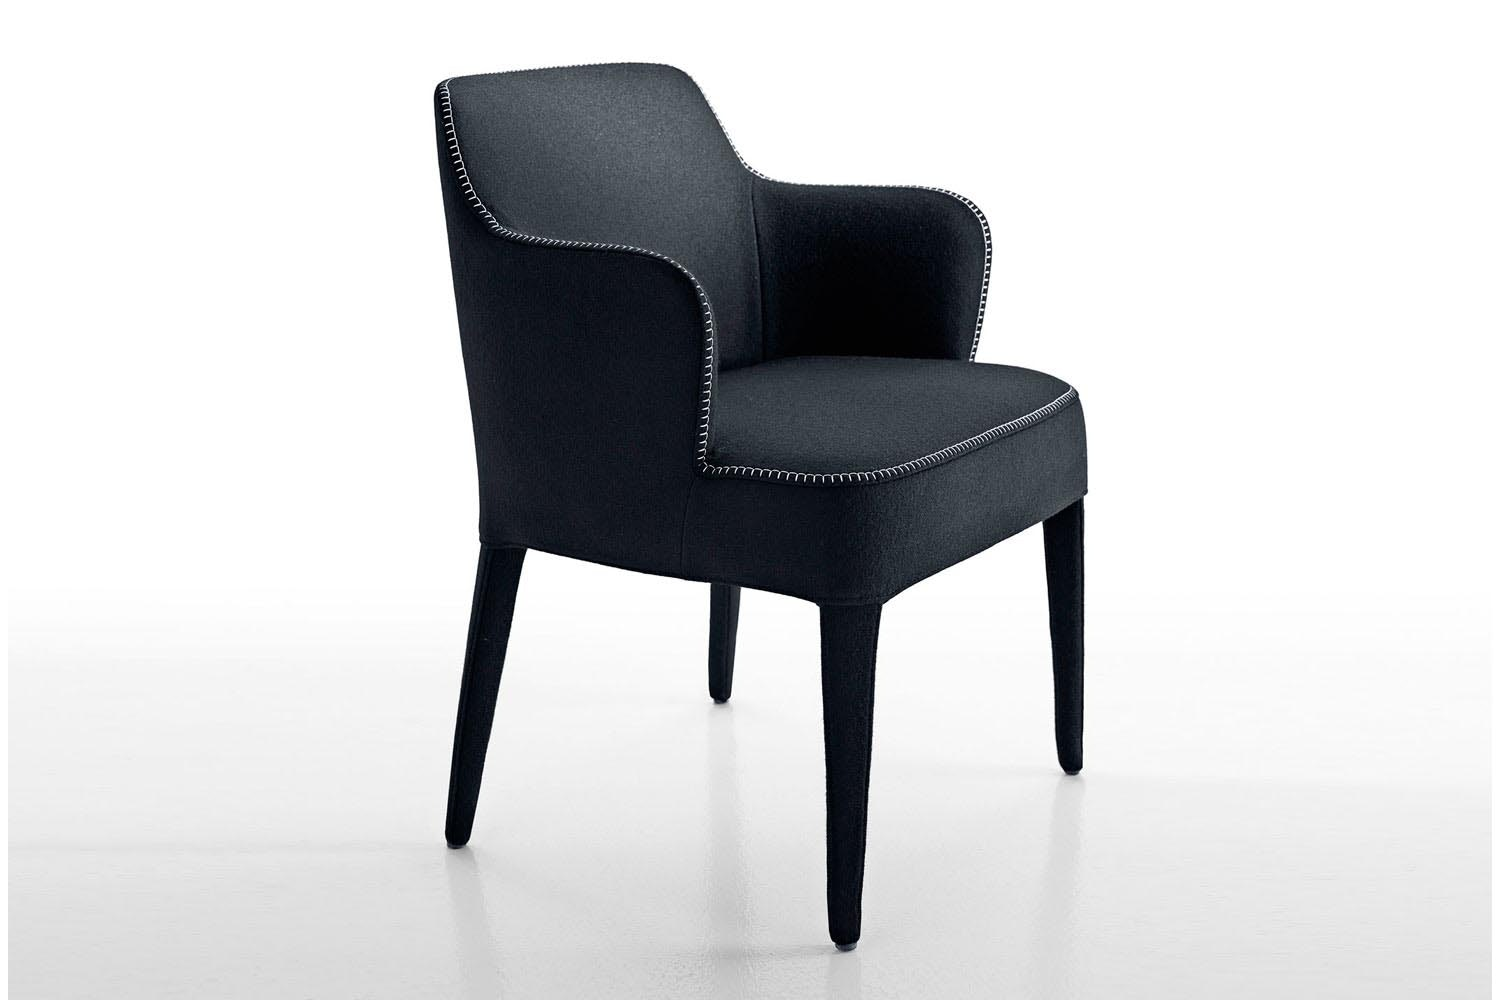 space furniture chairs. Febo \u002715 Chair By Antonio Citterio For Maxalto Space Furniture Chairs